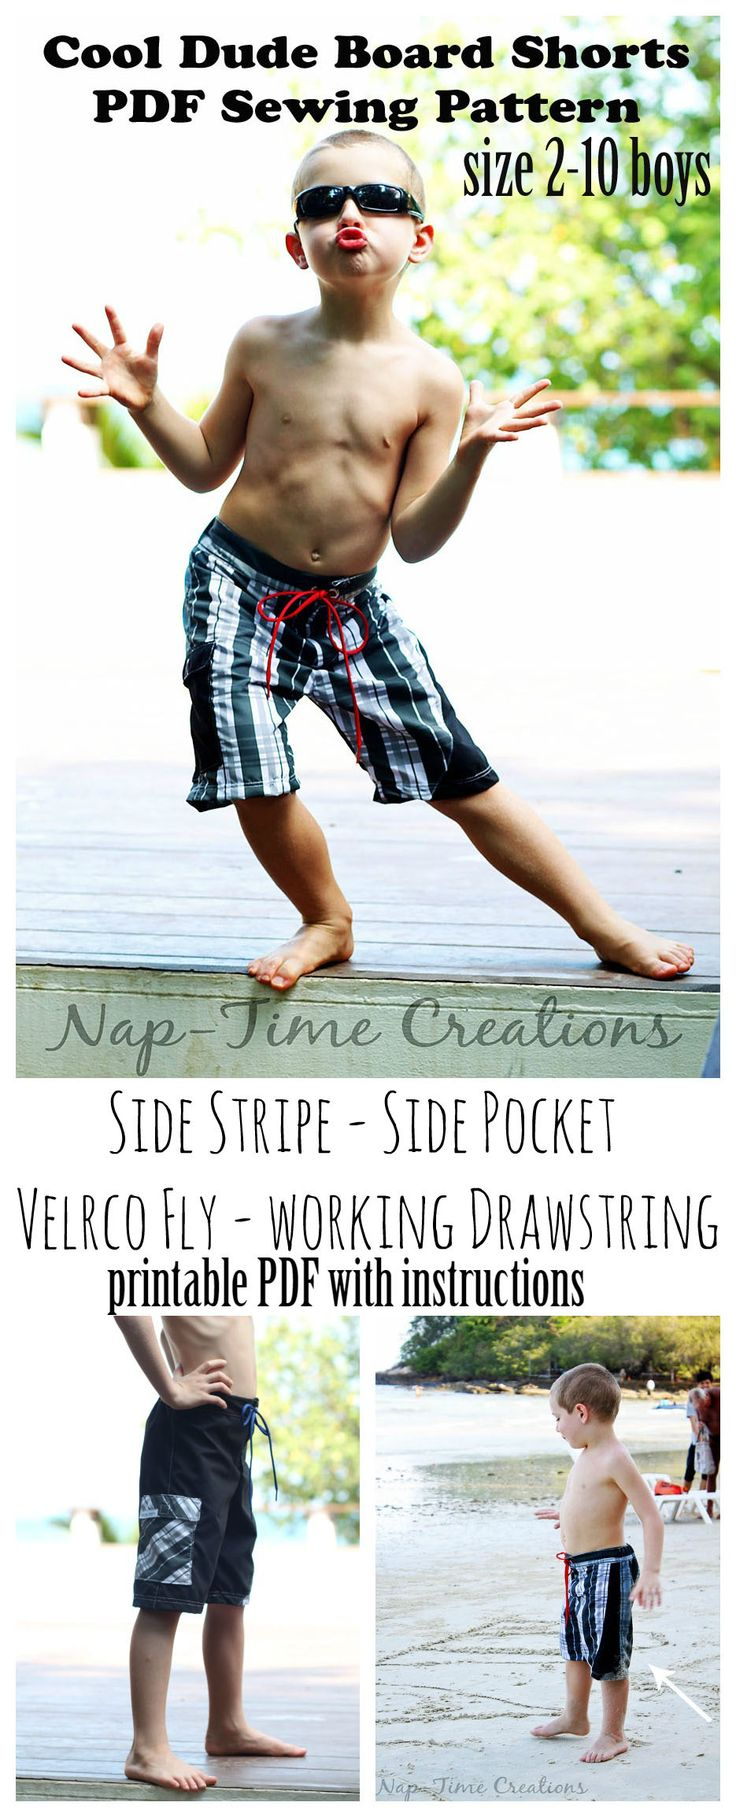 Cool Dude Board Shorts Sewing Pattern - Nap-time Creations